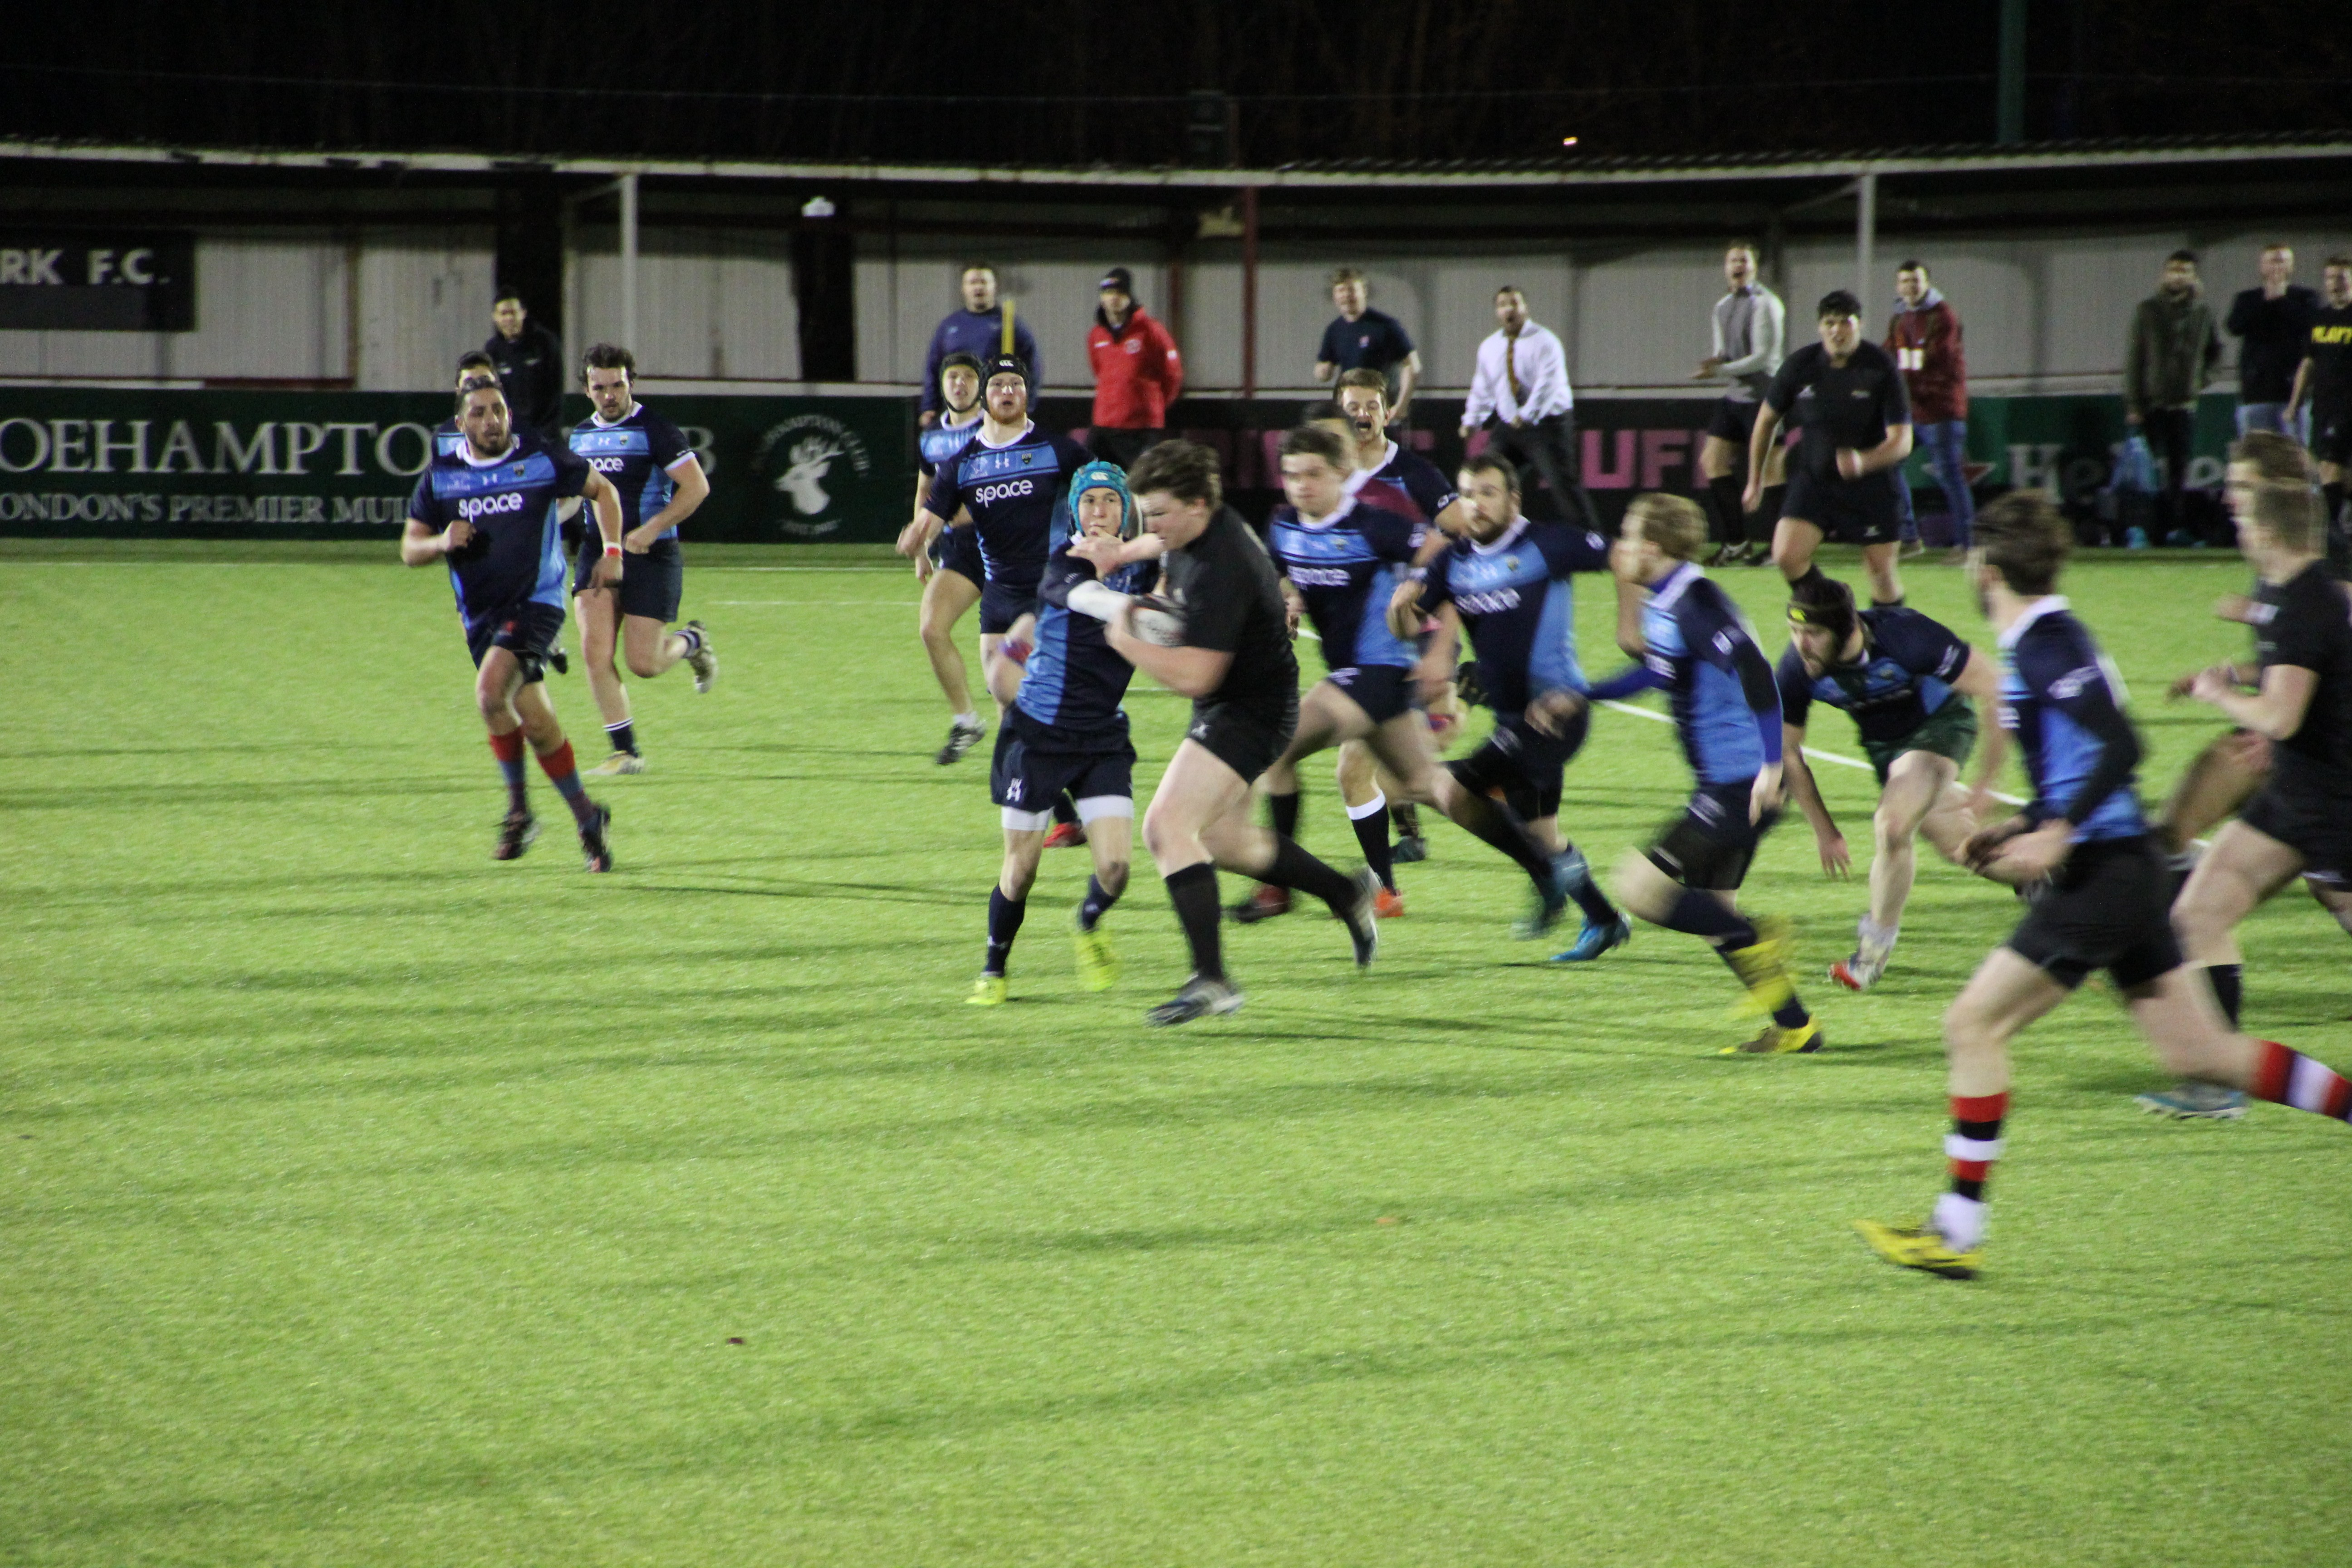 Kingston Men's rugby team face defeat